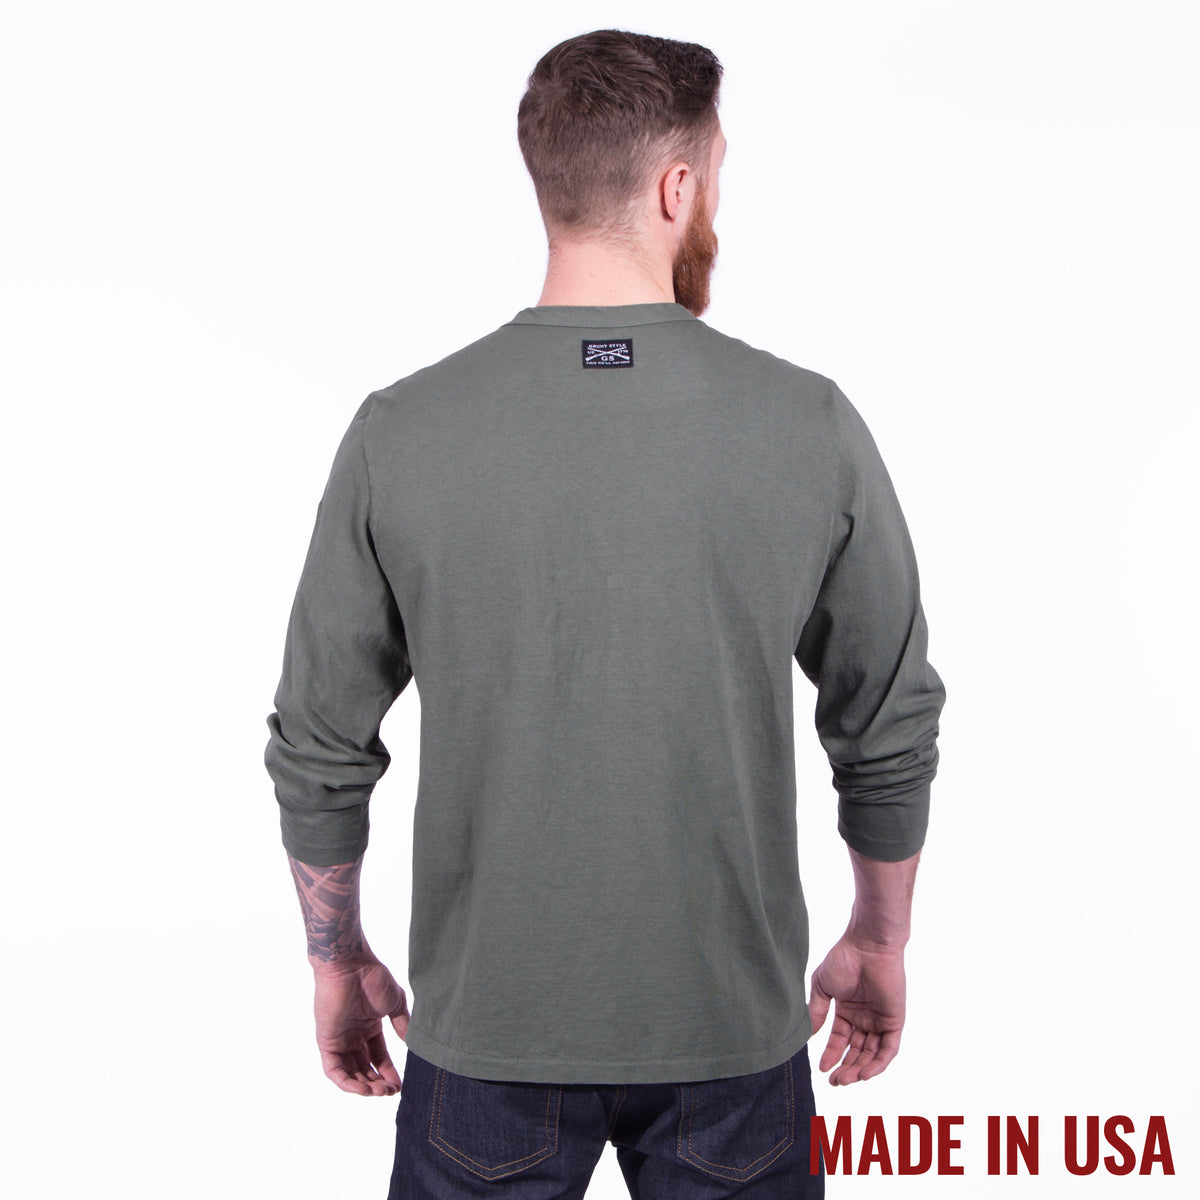 Longsleeve Pocket Tee - Forest Green – Grunt Style c1c75fa36